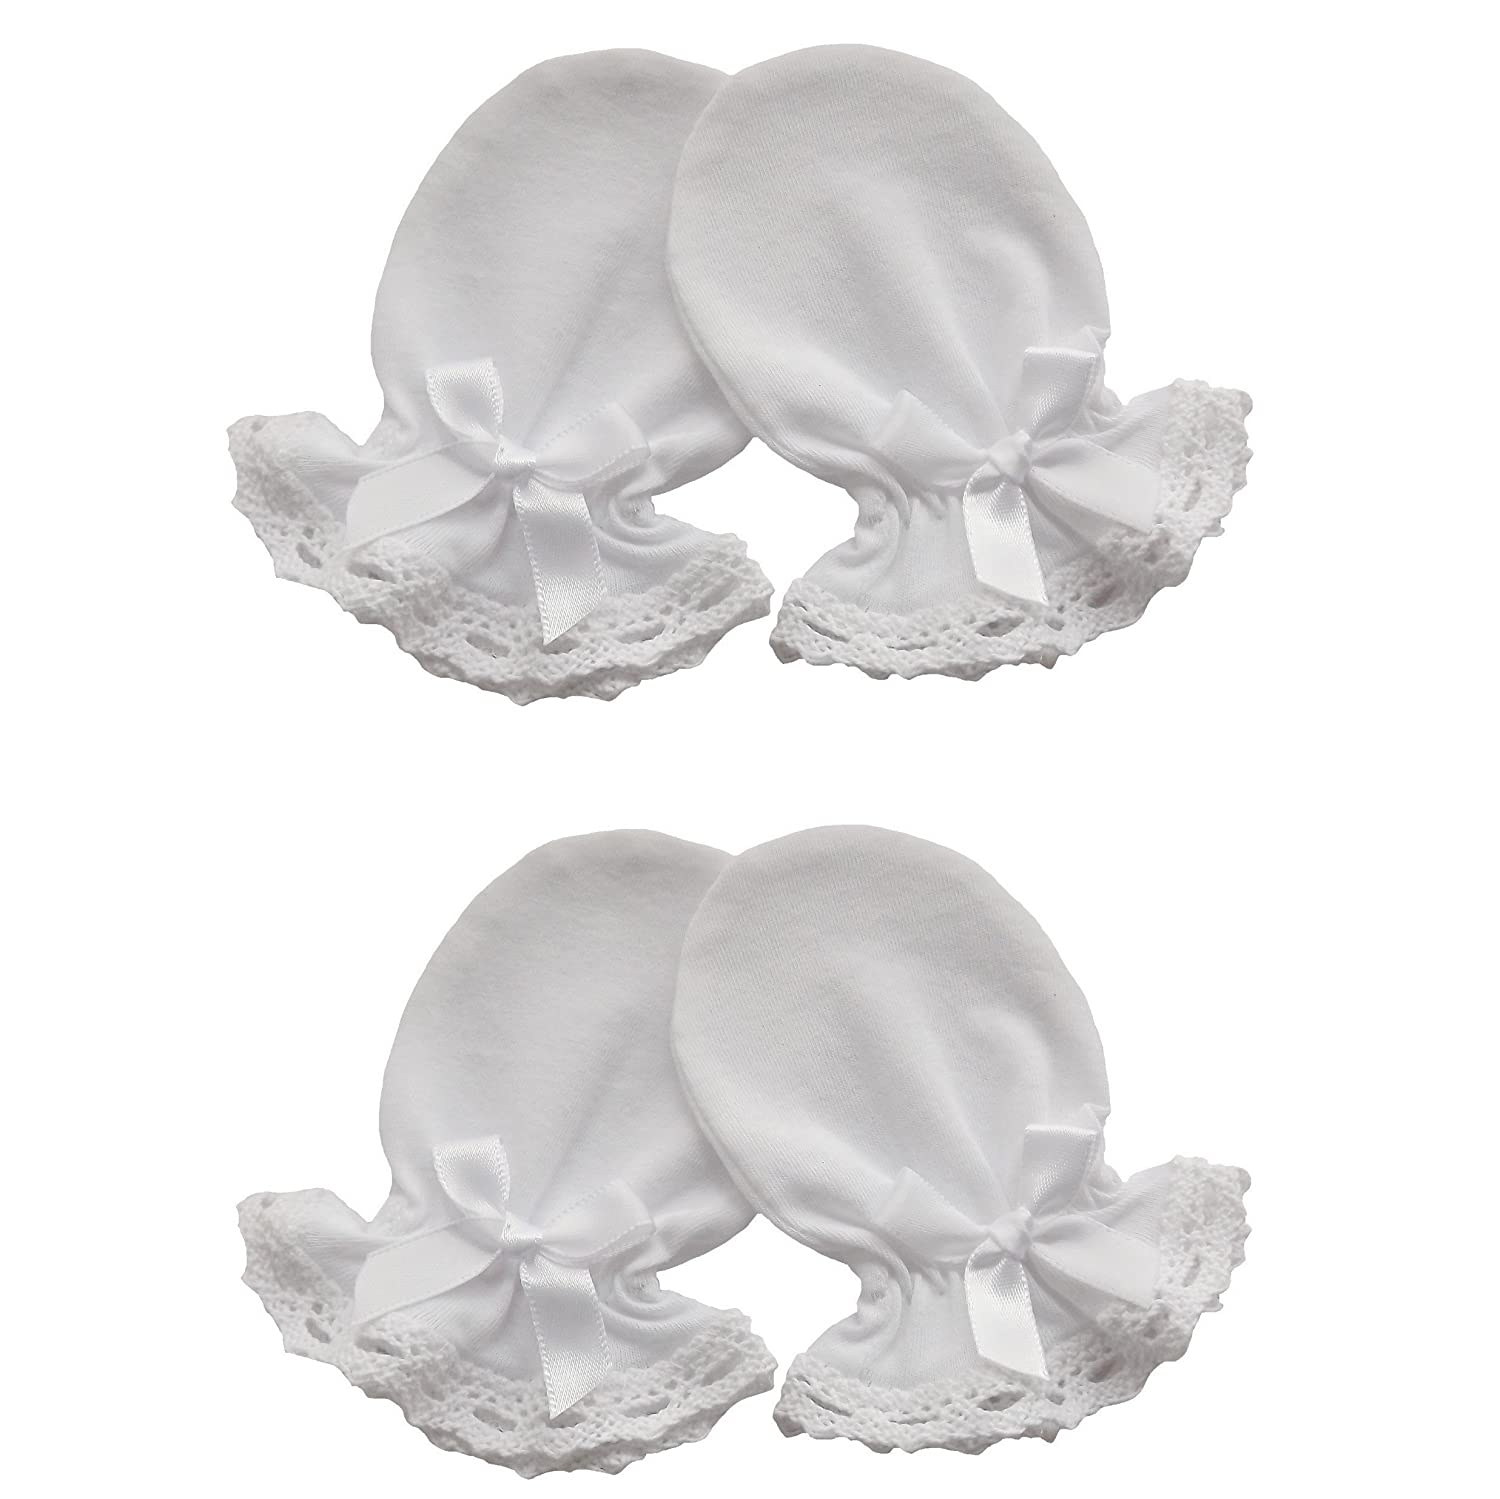 2 Pairs Cotton Jersey Newborn Baby Anti Scratch Mittens Christening Cotton Lace Color White